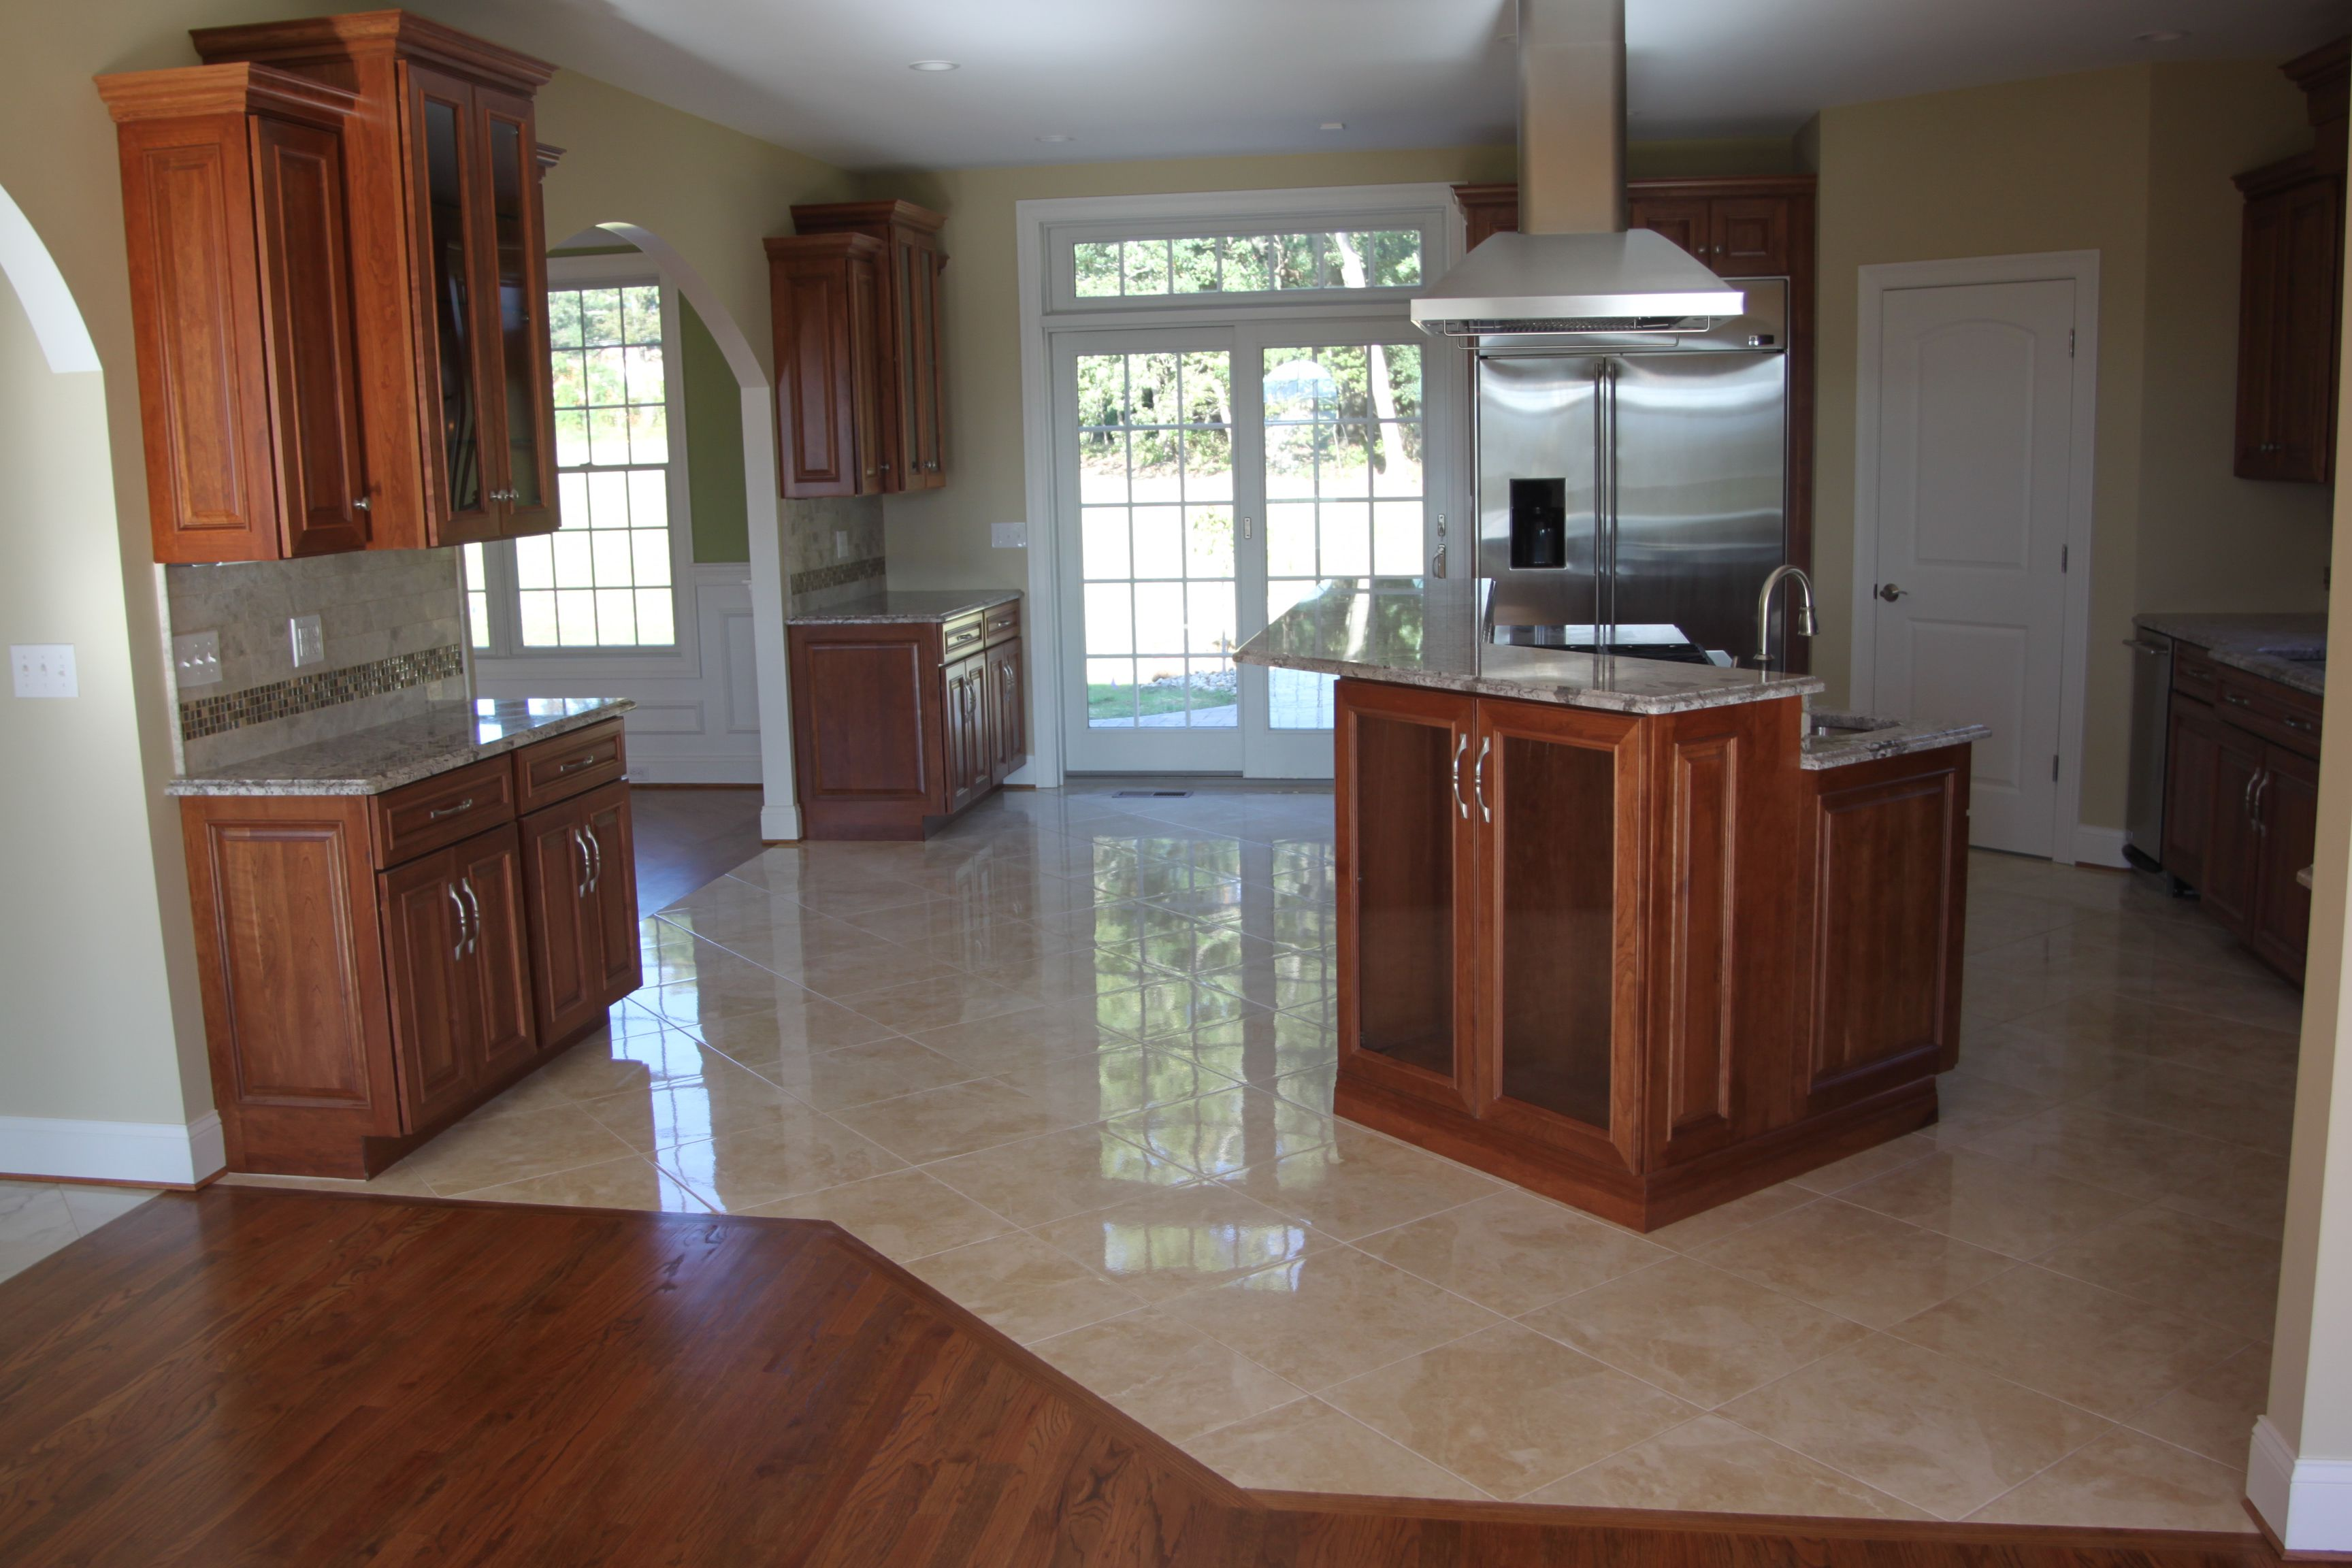 Floor tile designs ideas to enhance your floor appearance for Flooring for kitchen floors